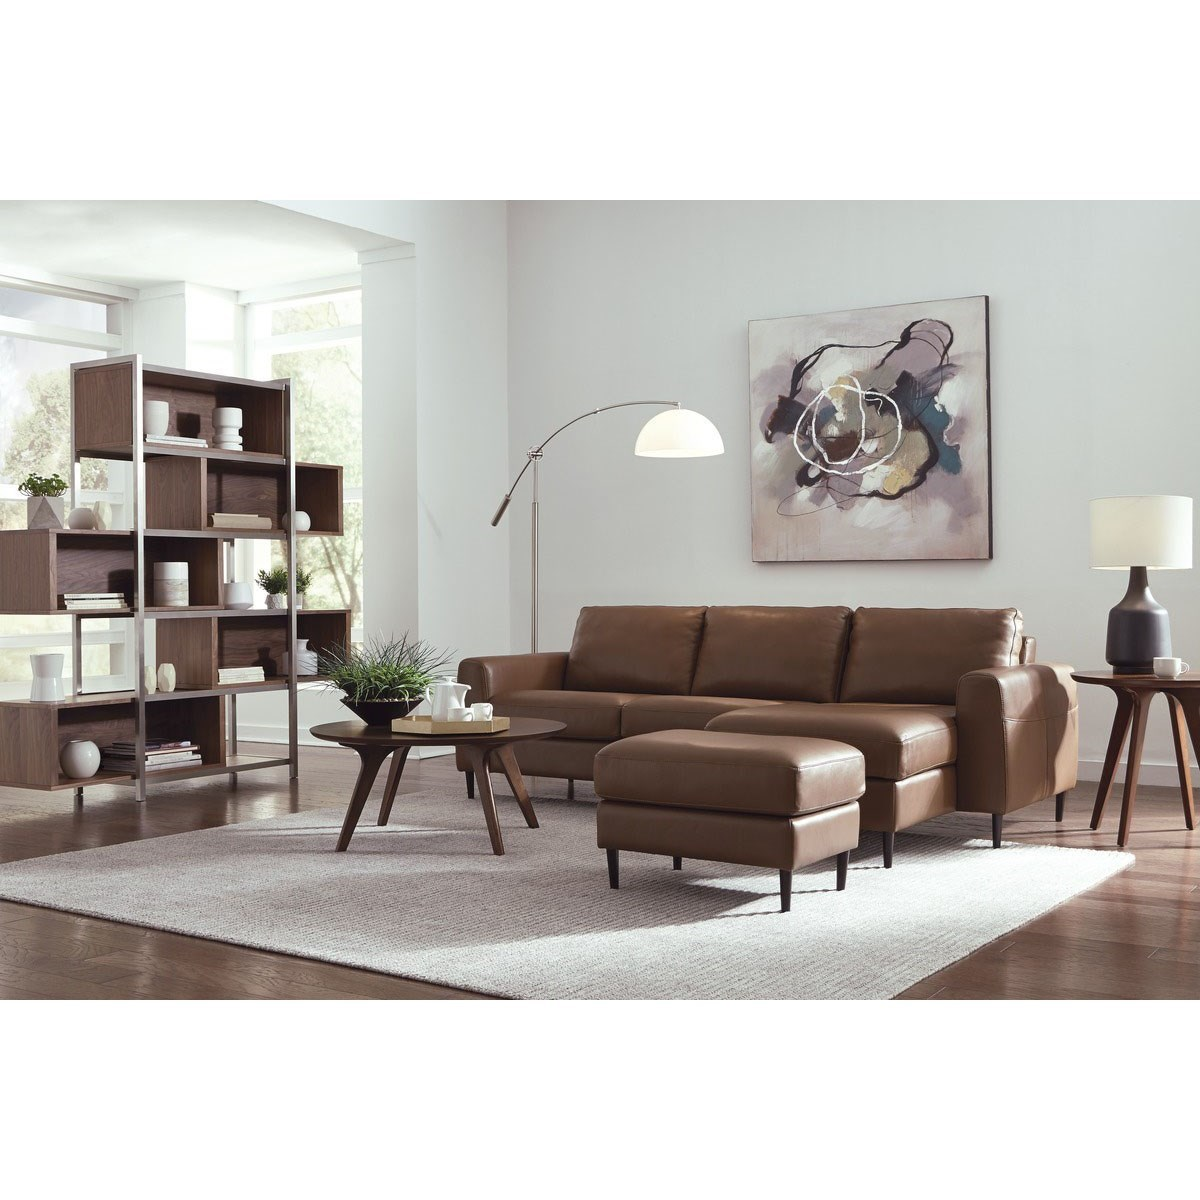 Atticus Living Room Group by Palliser at Mueller Furniture